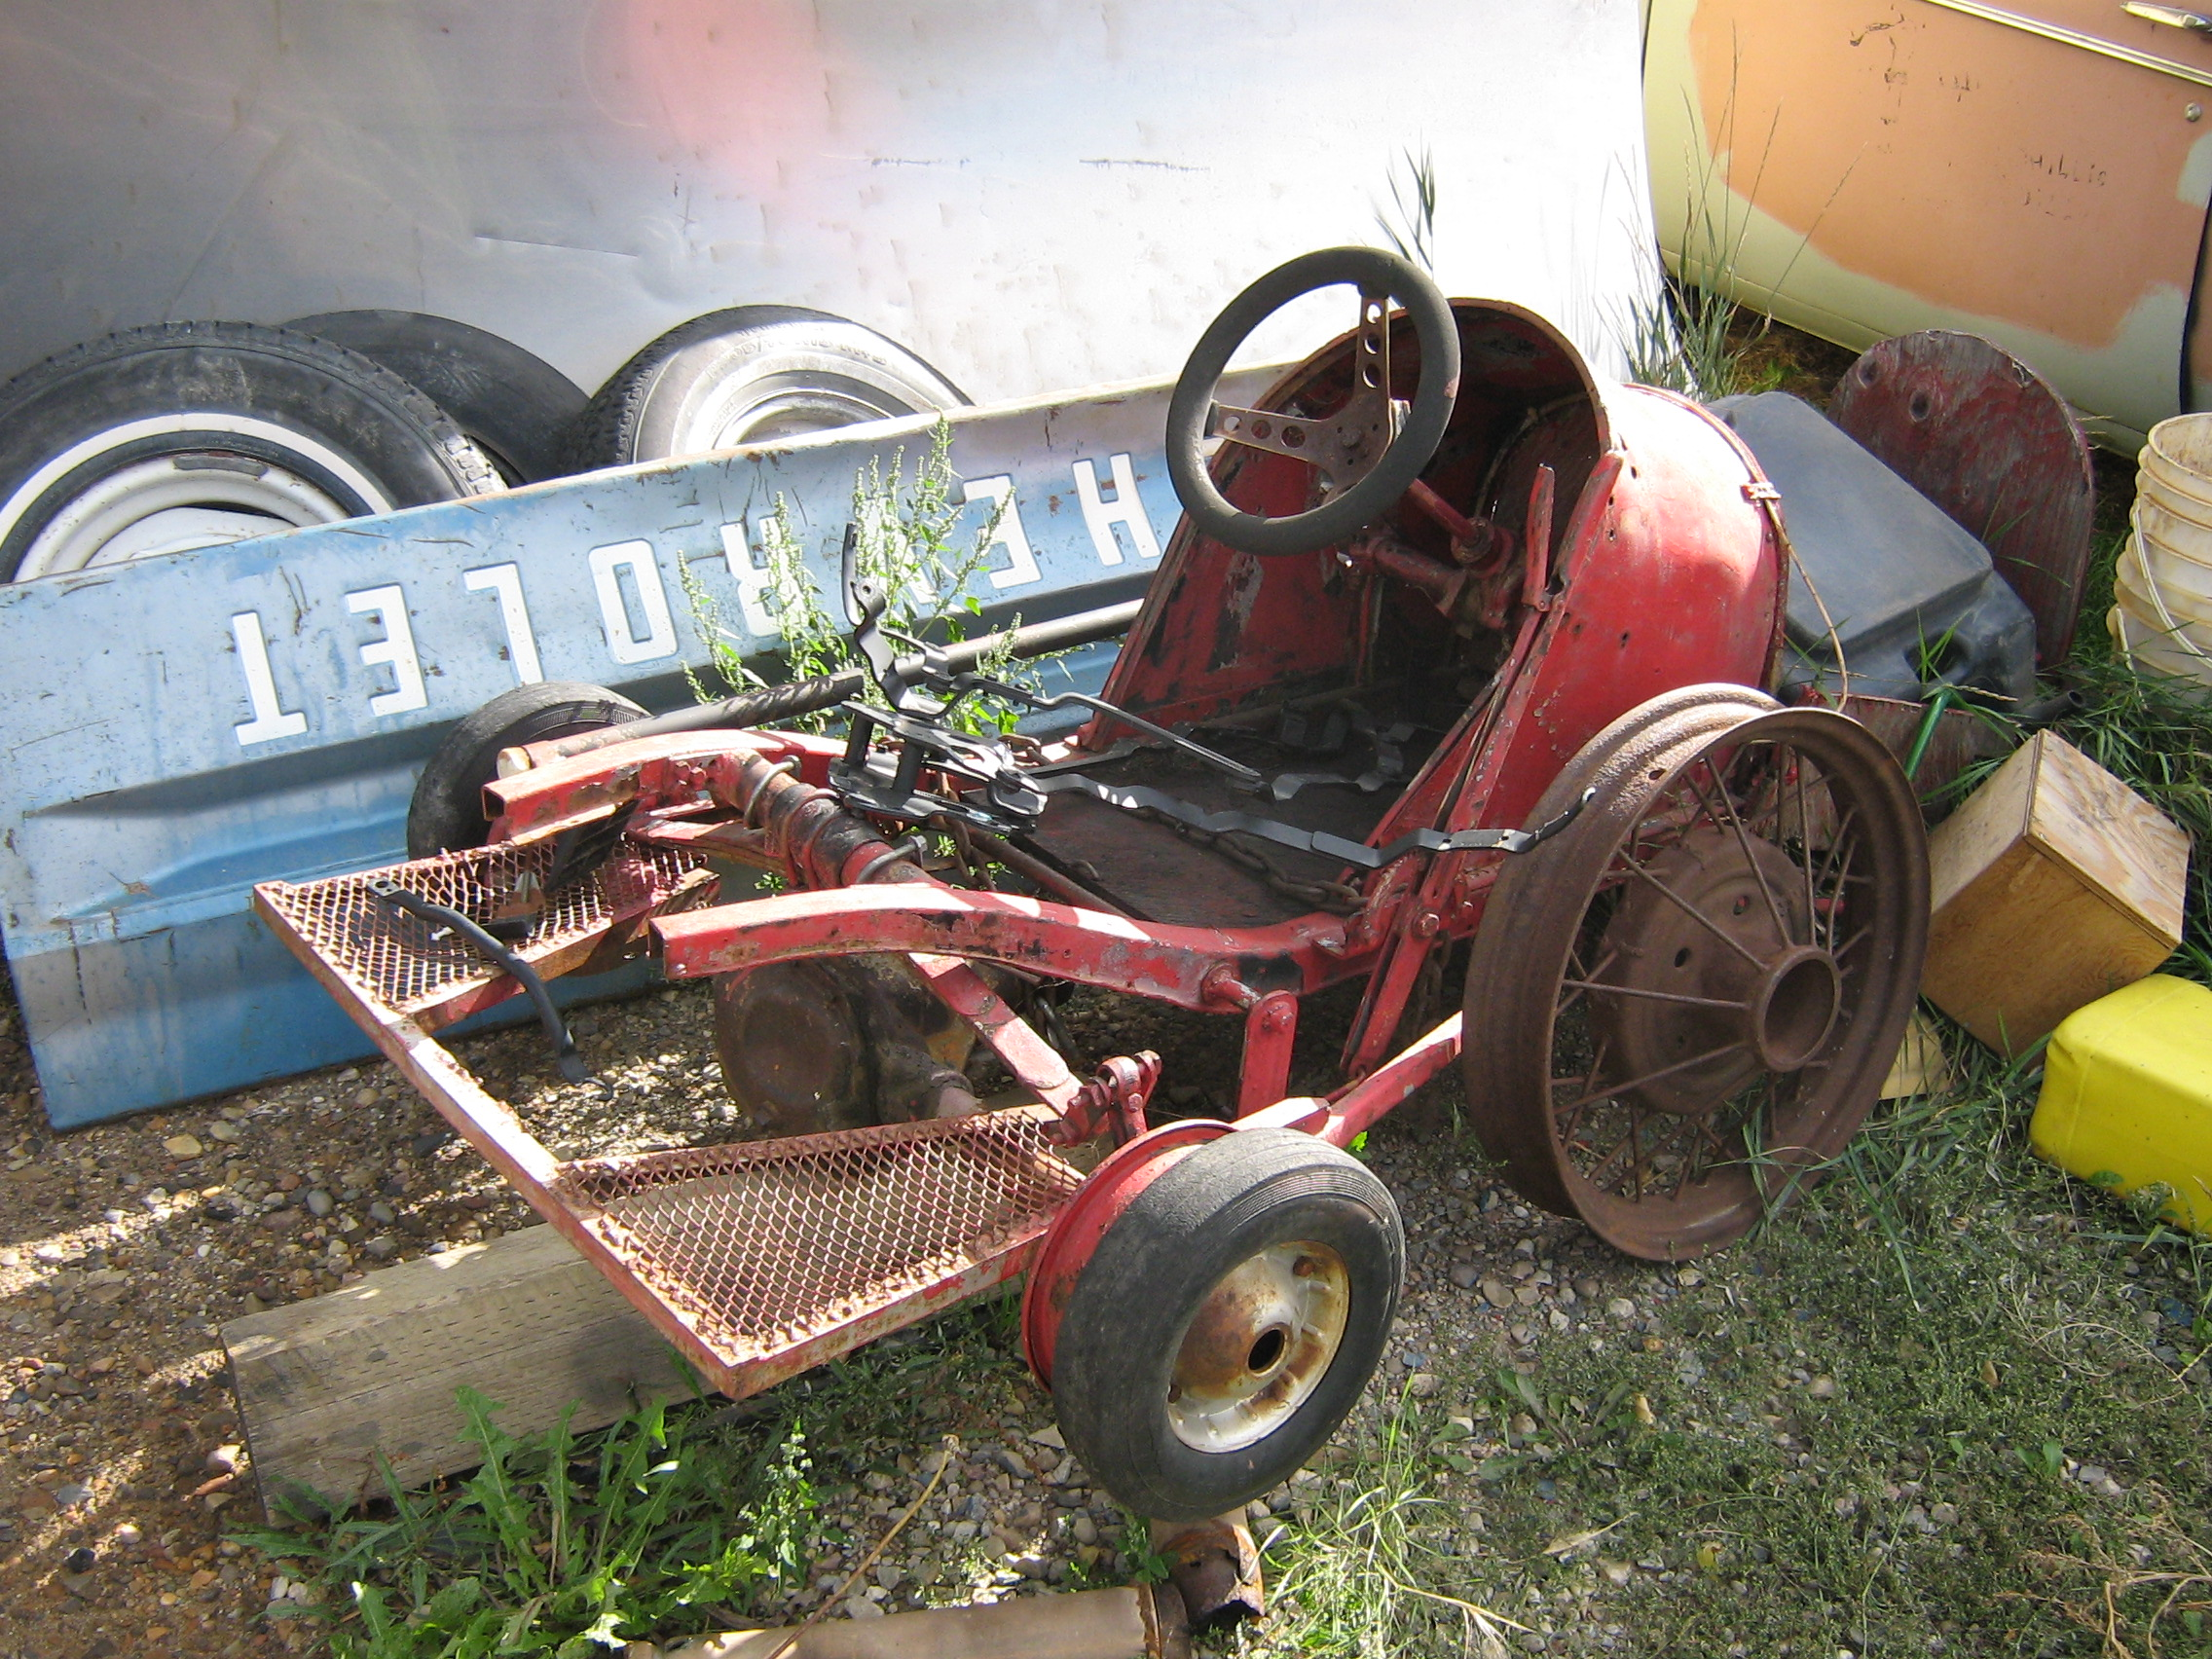 File:Old Go-Kart (1438469719).jpg - Wikimedia Commons